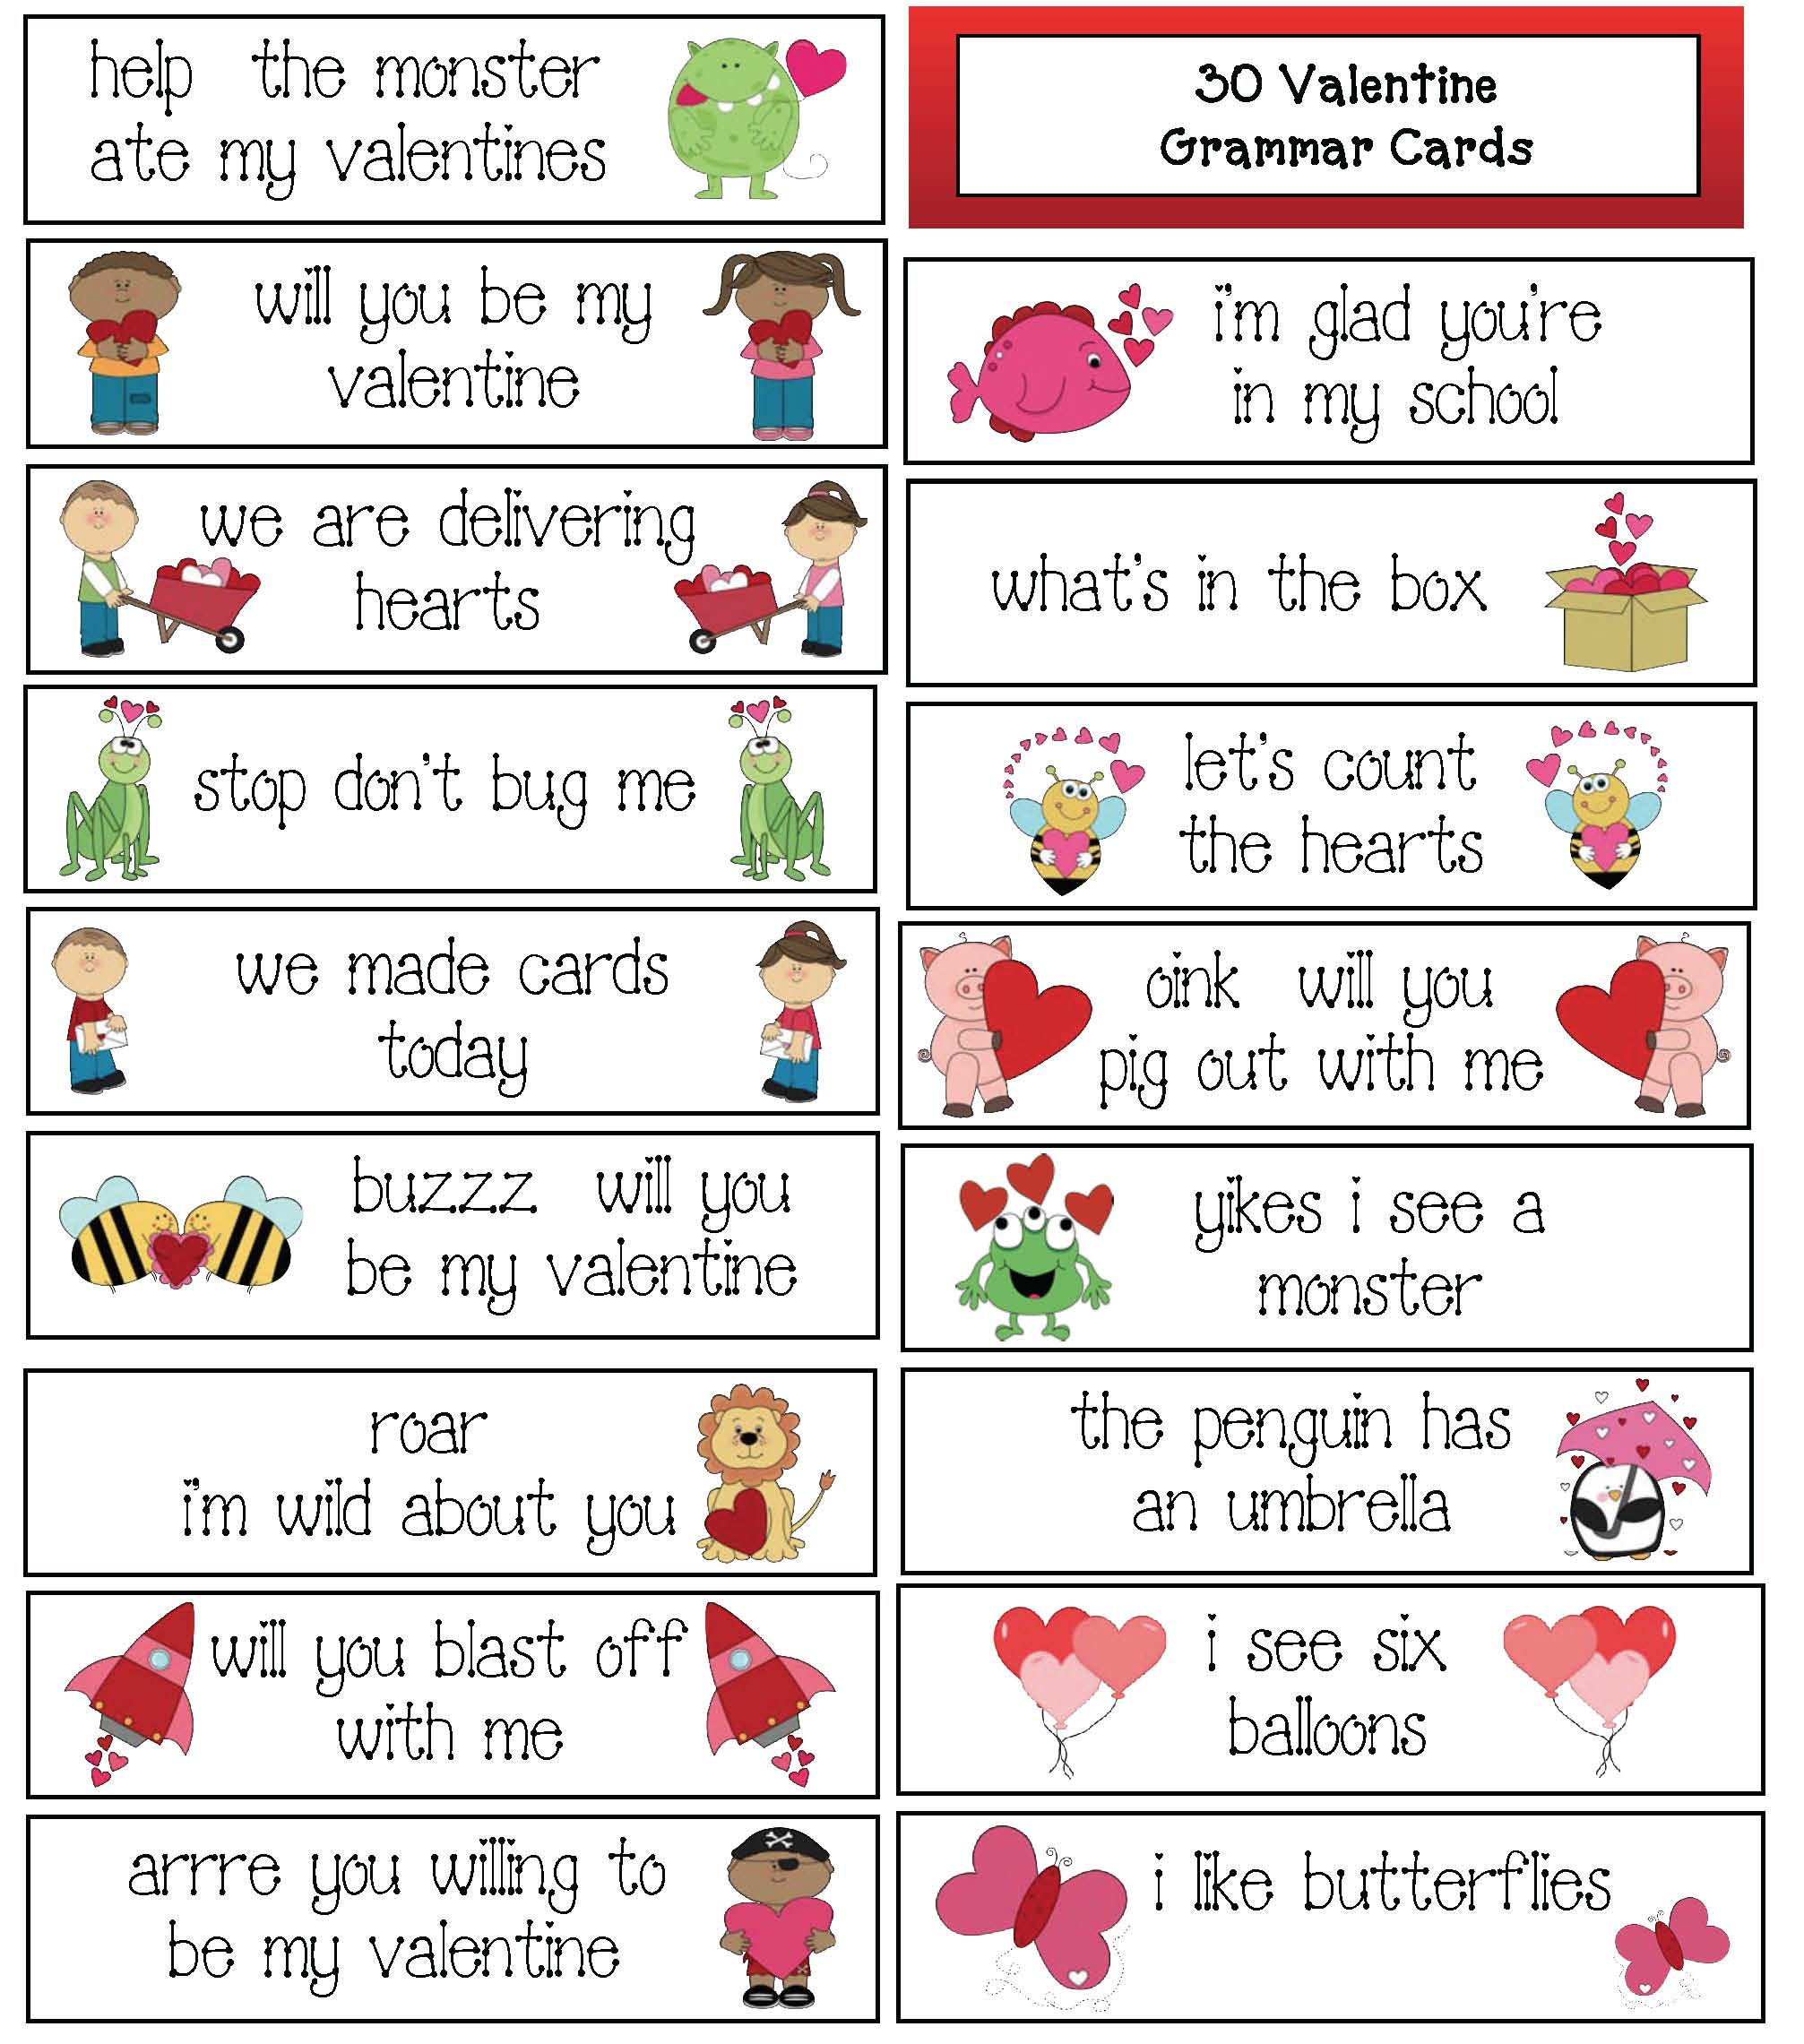 vlist of 100 favorite valentine books, valentine activities, valentine 10 frames, 10 frames templates, 10 frames with hearts, telling time for valentines day, telling time games, telling time assessments, candy heart activities, valentine punctuation, punctuation pocket cards, punctuation activities, capitalization activities, capital letters, telling time assessments, telliing time games, telling time centers, valentine centers, valentine bookmarks, valentine bibliography